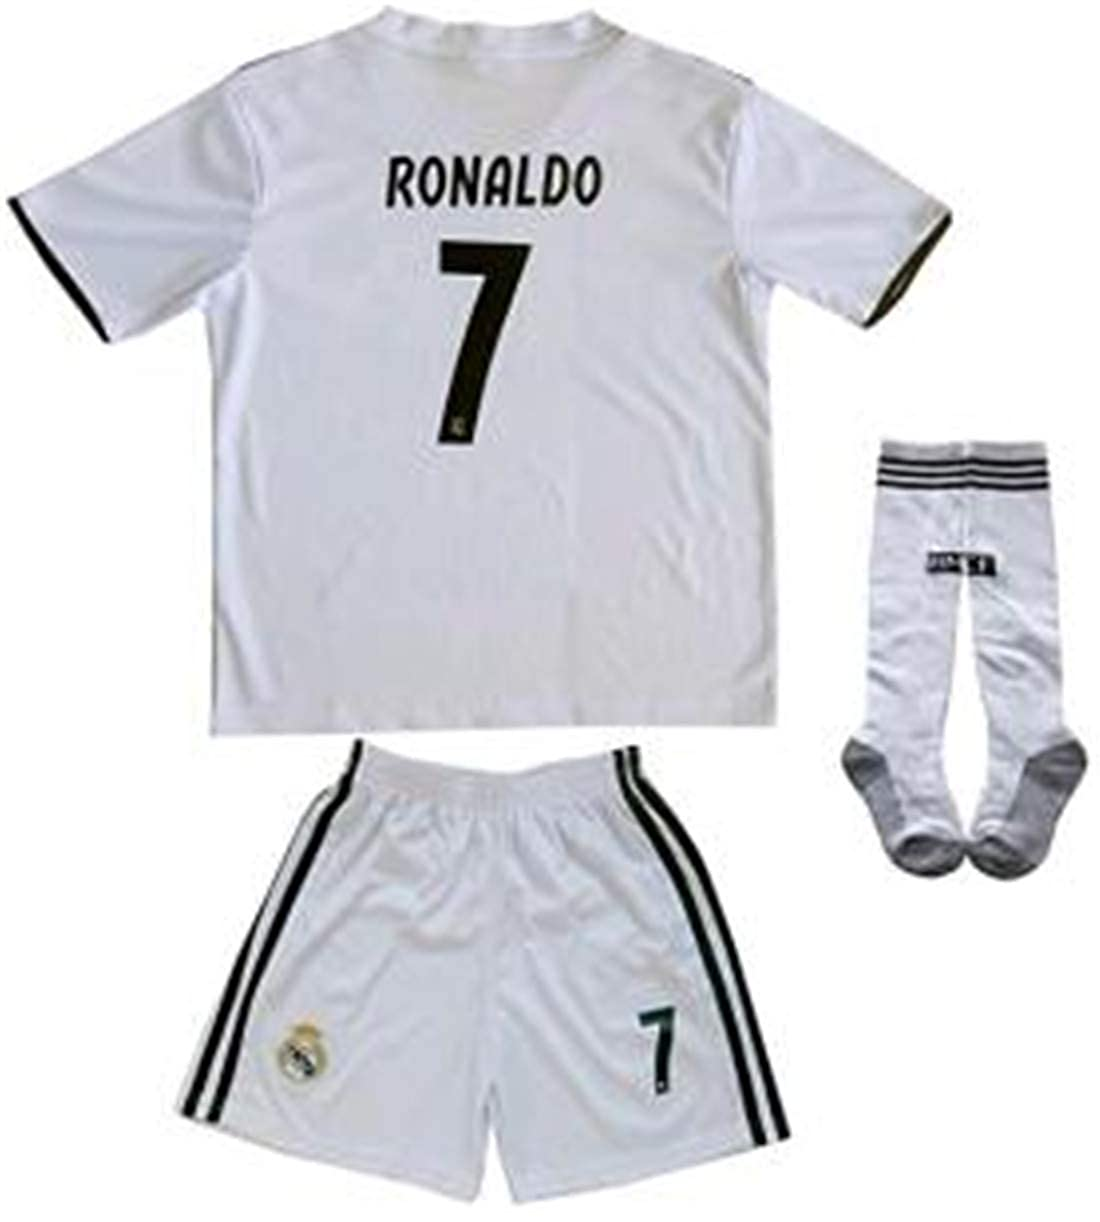 new concept 14dfb d943d LISIMKE Soccer Team Home 2018/19 Real Madrid C Ronaldo #7 Kid Youth Replica  Jersey Kit : Jersey & Shorts & Socks